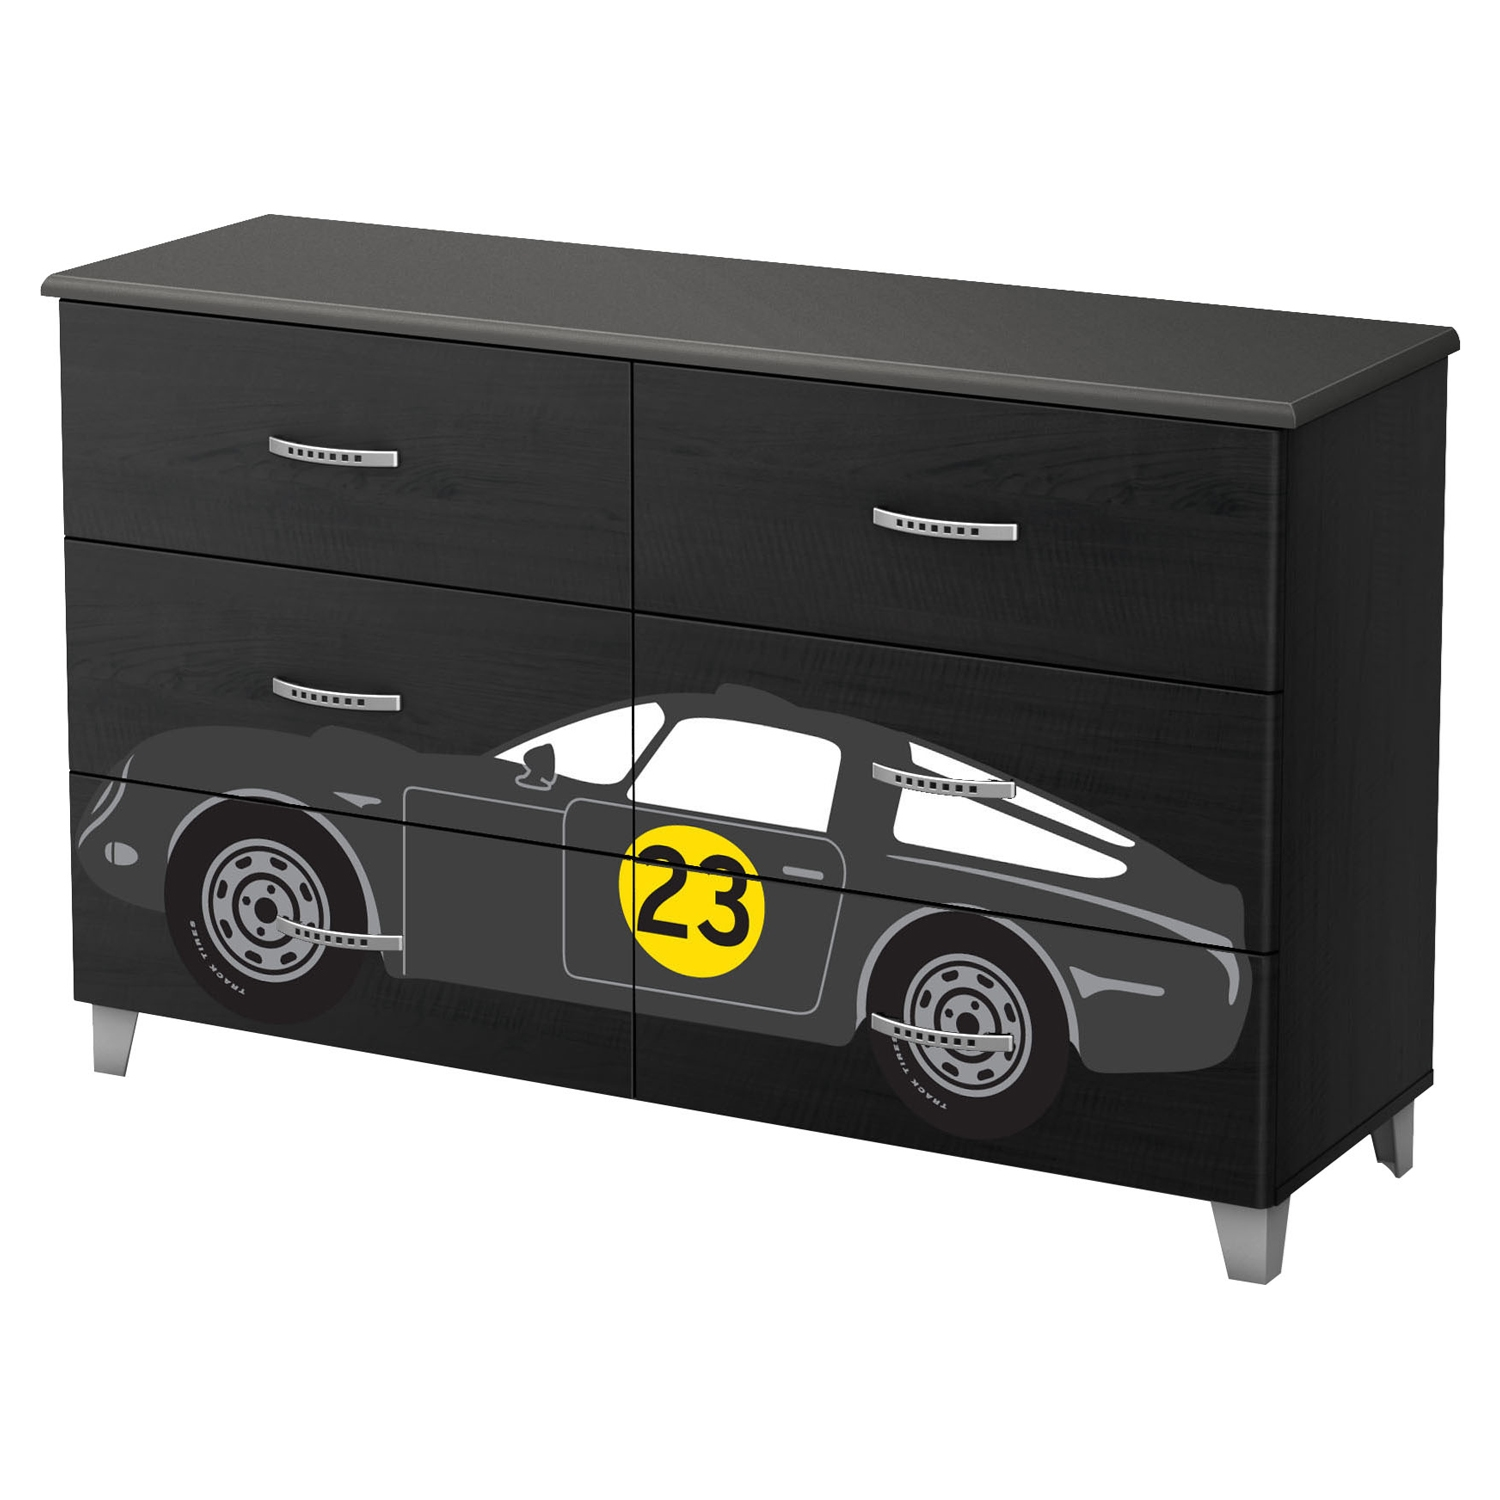 Luka 6 Drawers Double Dresser - Car Decals, Black Onyx and Charcoal